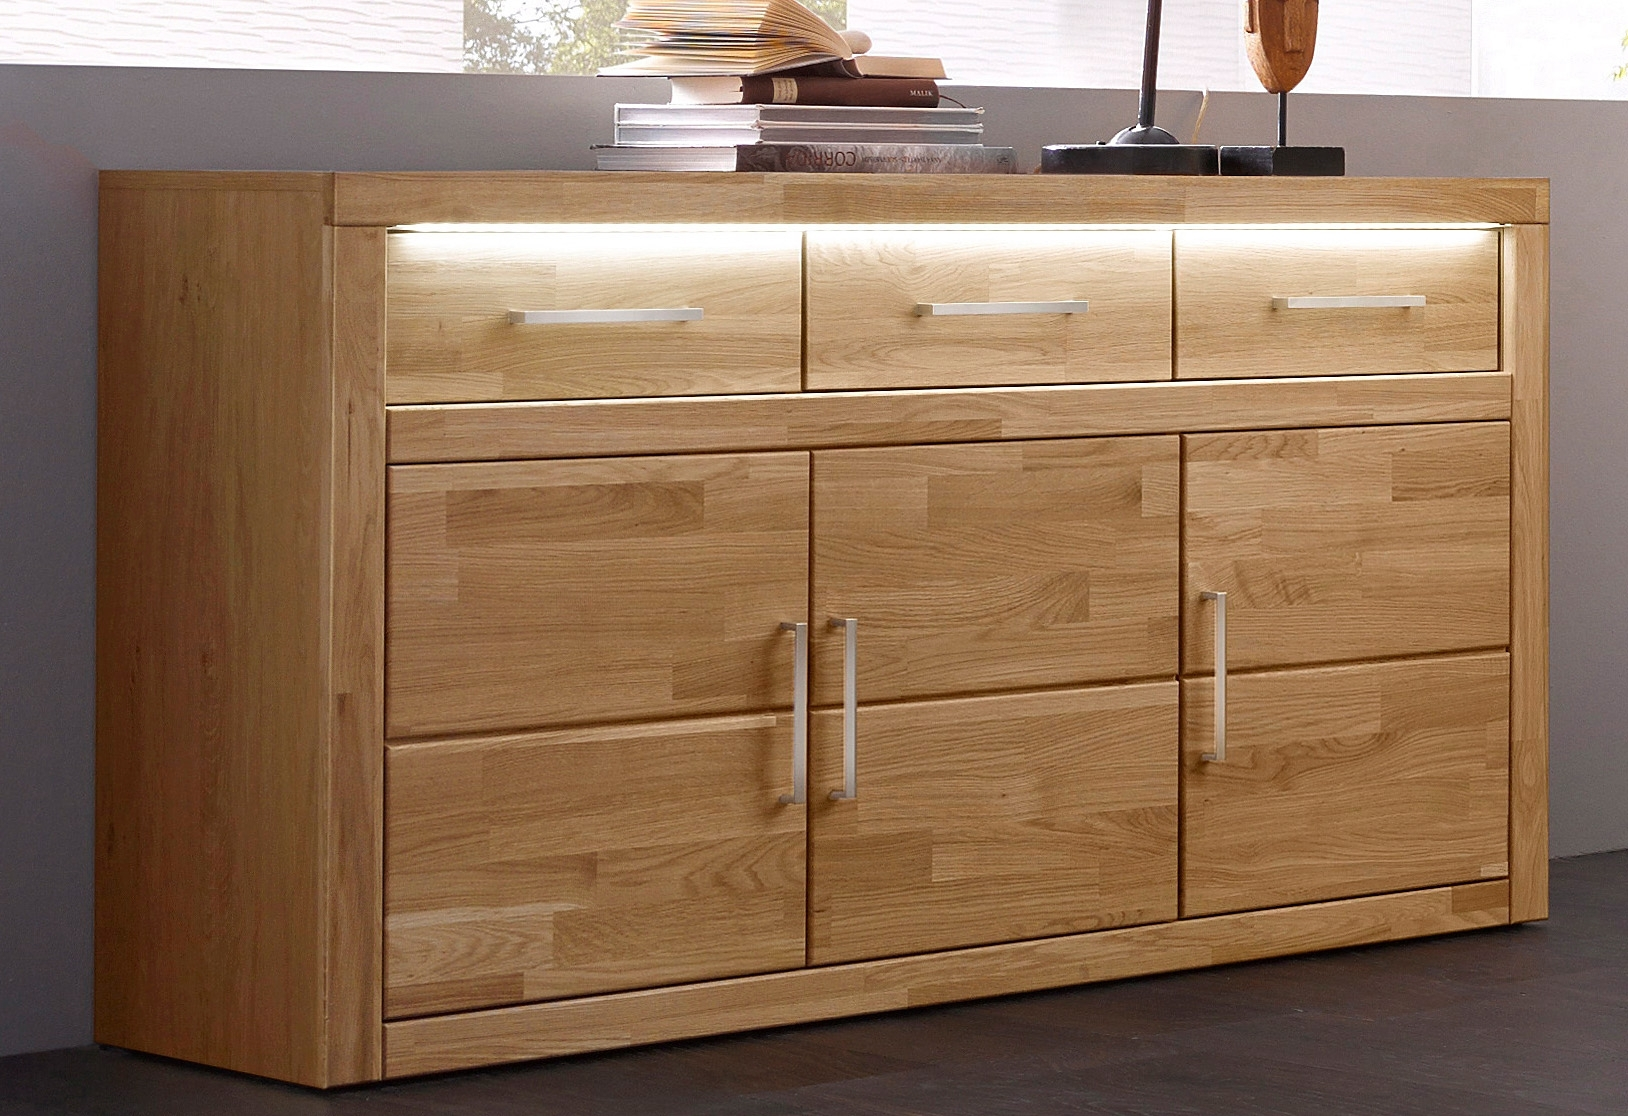 sideboard wei otto fabulous otto eiche hell mobel bibserver with sideboard wei otto best otto. Black Bedroom Furniture Sets. Home Design Ideas